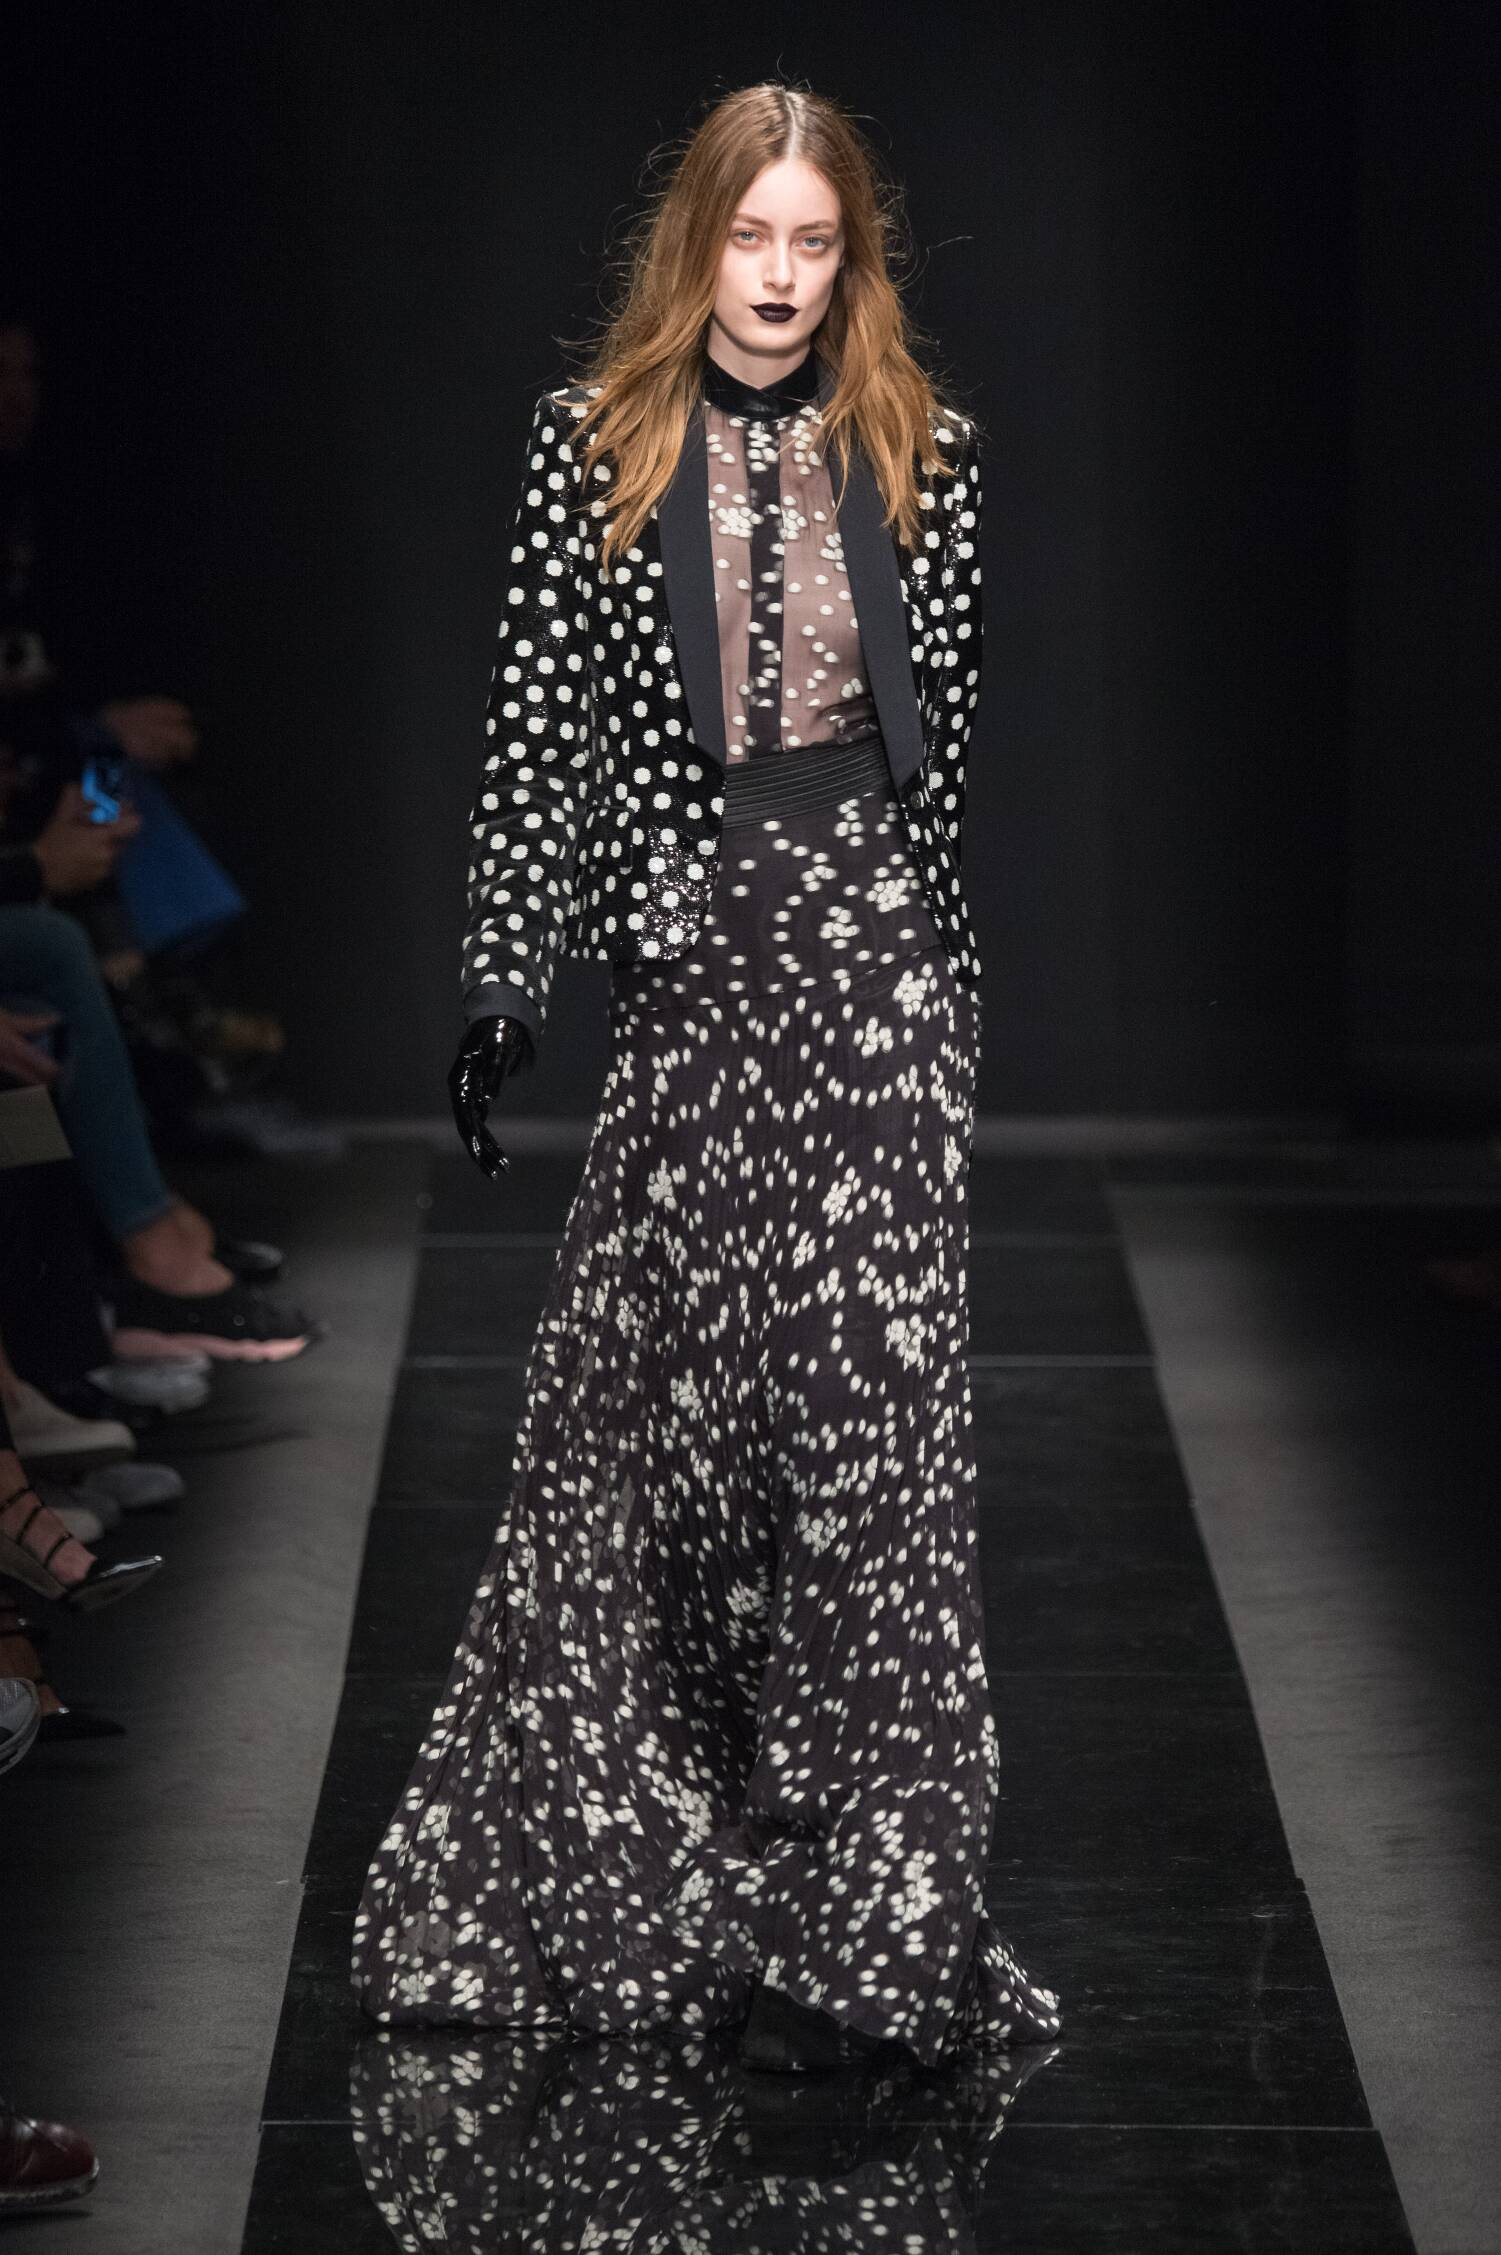 Emanuel Ungaro Fall Winter 2015 16 Womenswear Collection Paris Fashion Week Fashion Show